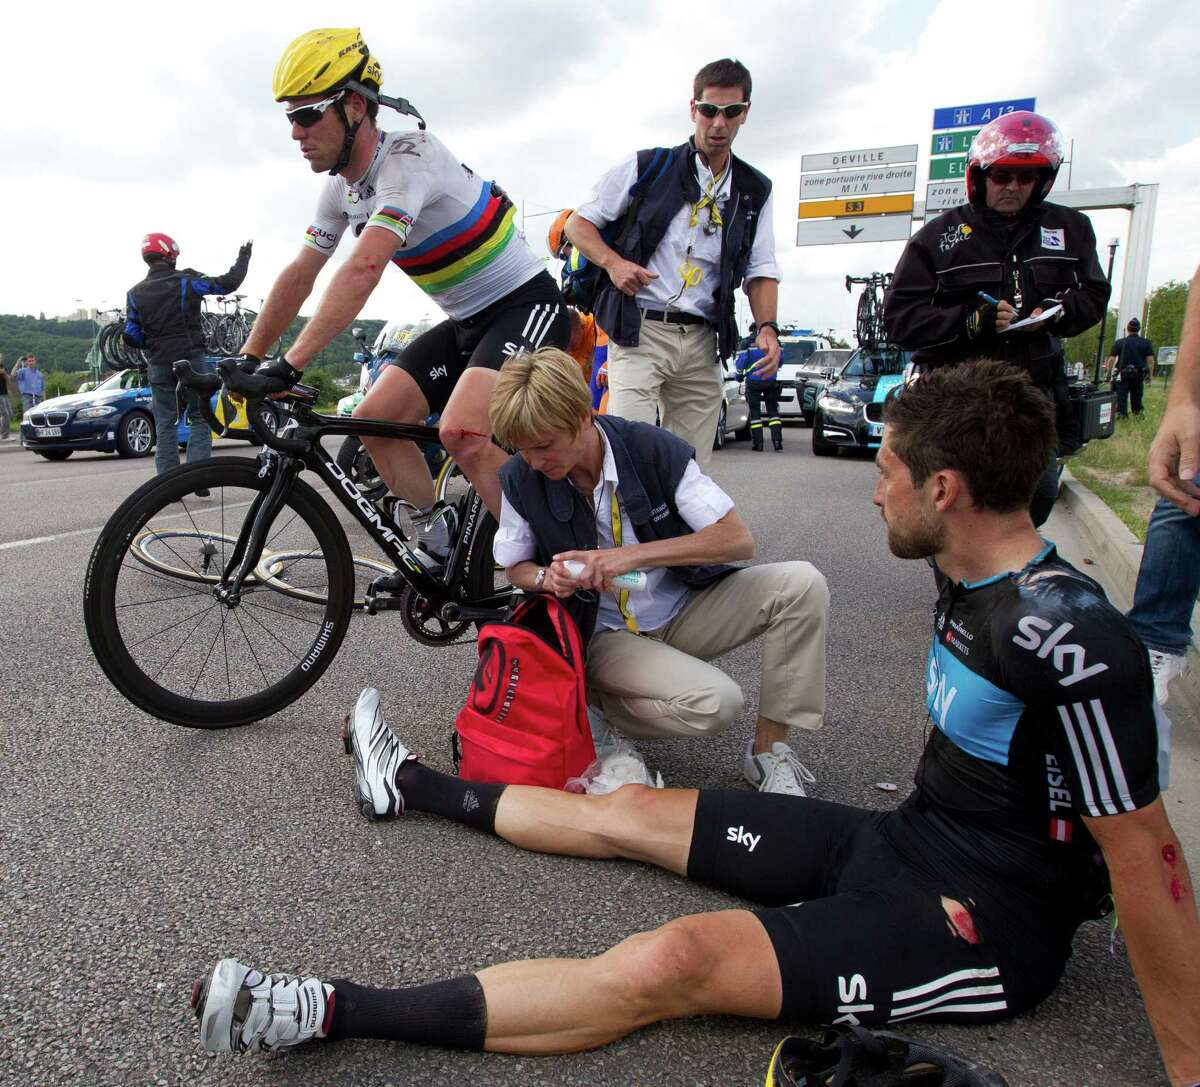 Mark Cavendish of Britain gets back on his bike after crashing with teammate Bernhard Eisel (right) of Austria during the fourth stage of the Tour de France.